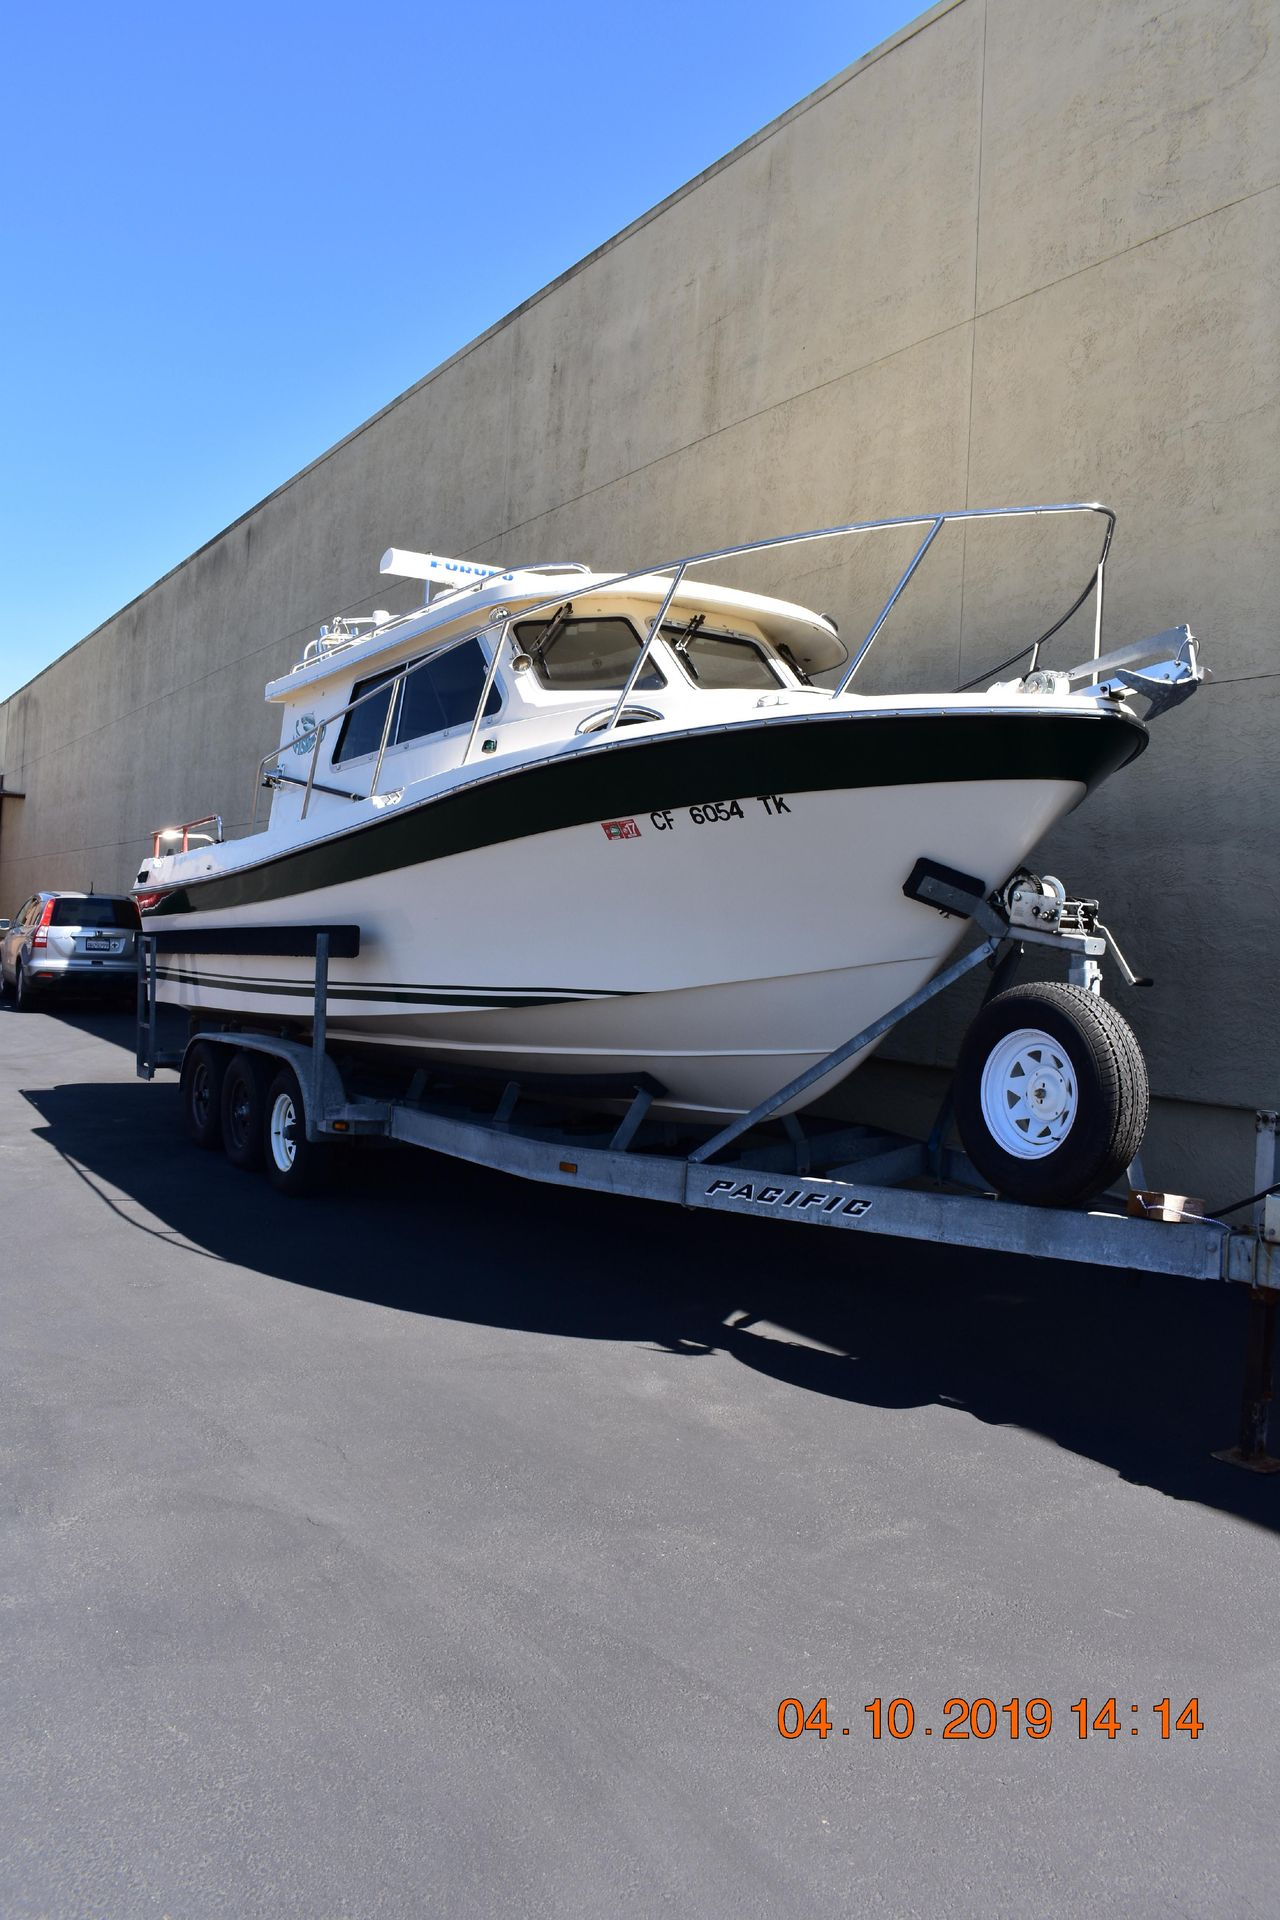 2005 Used Orca 27 XLC Freshwater Fishing Boat For Sale - $78,000